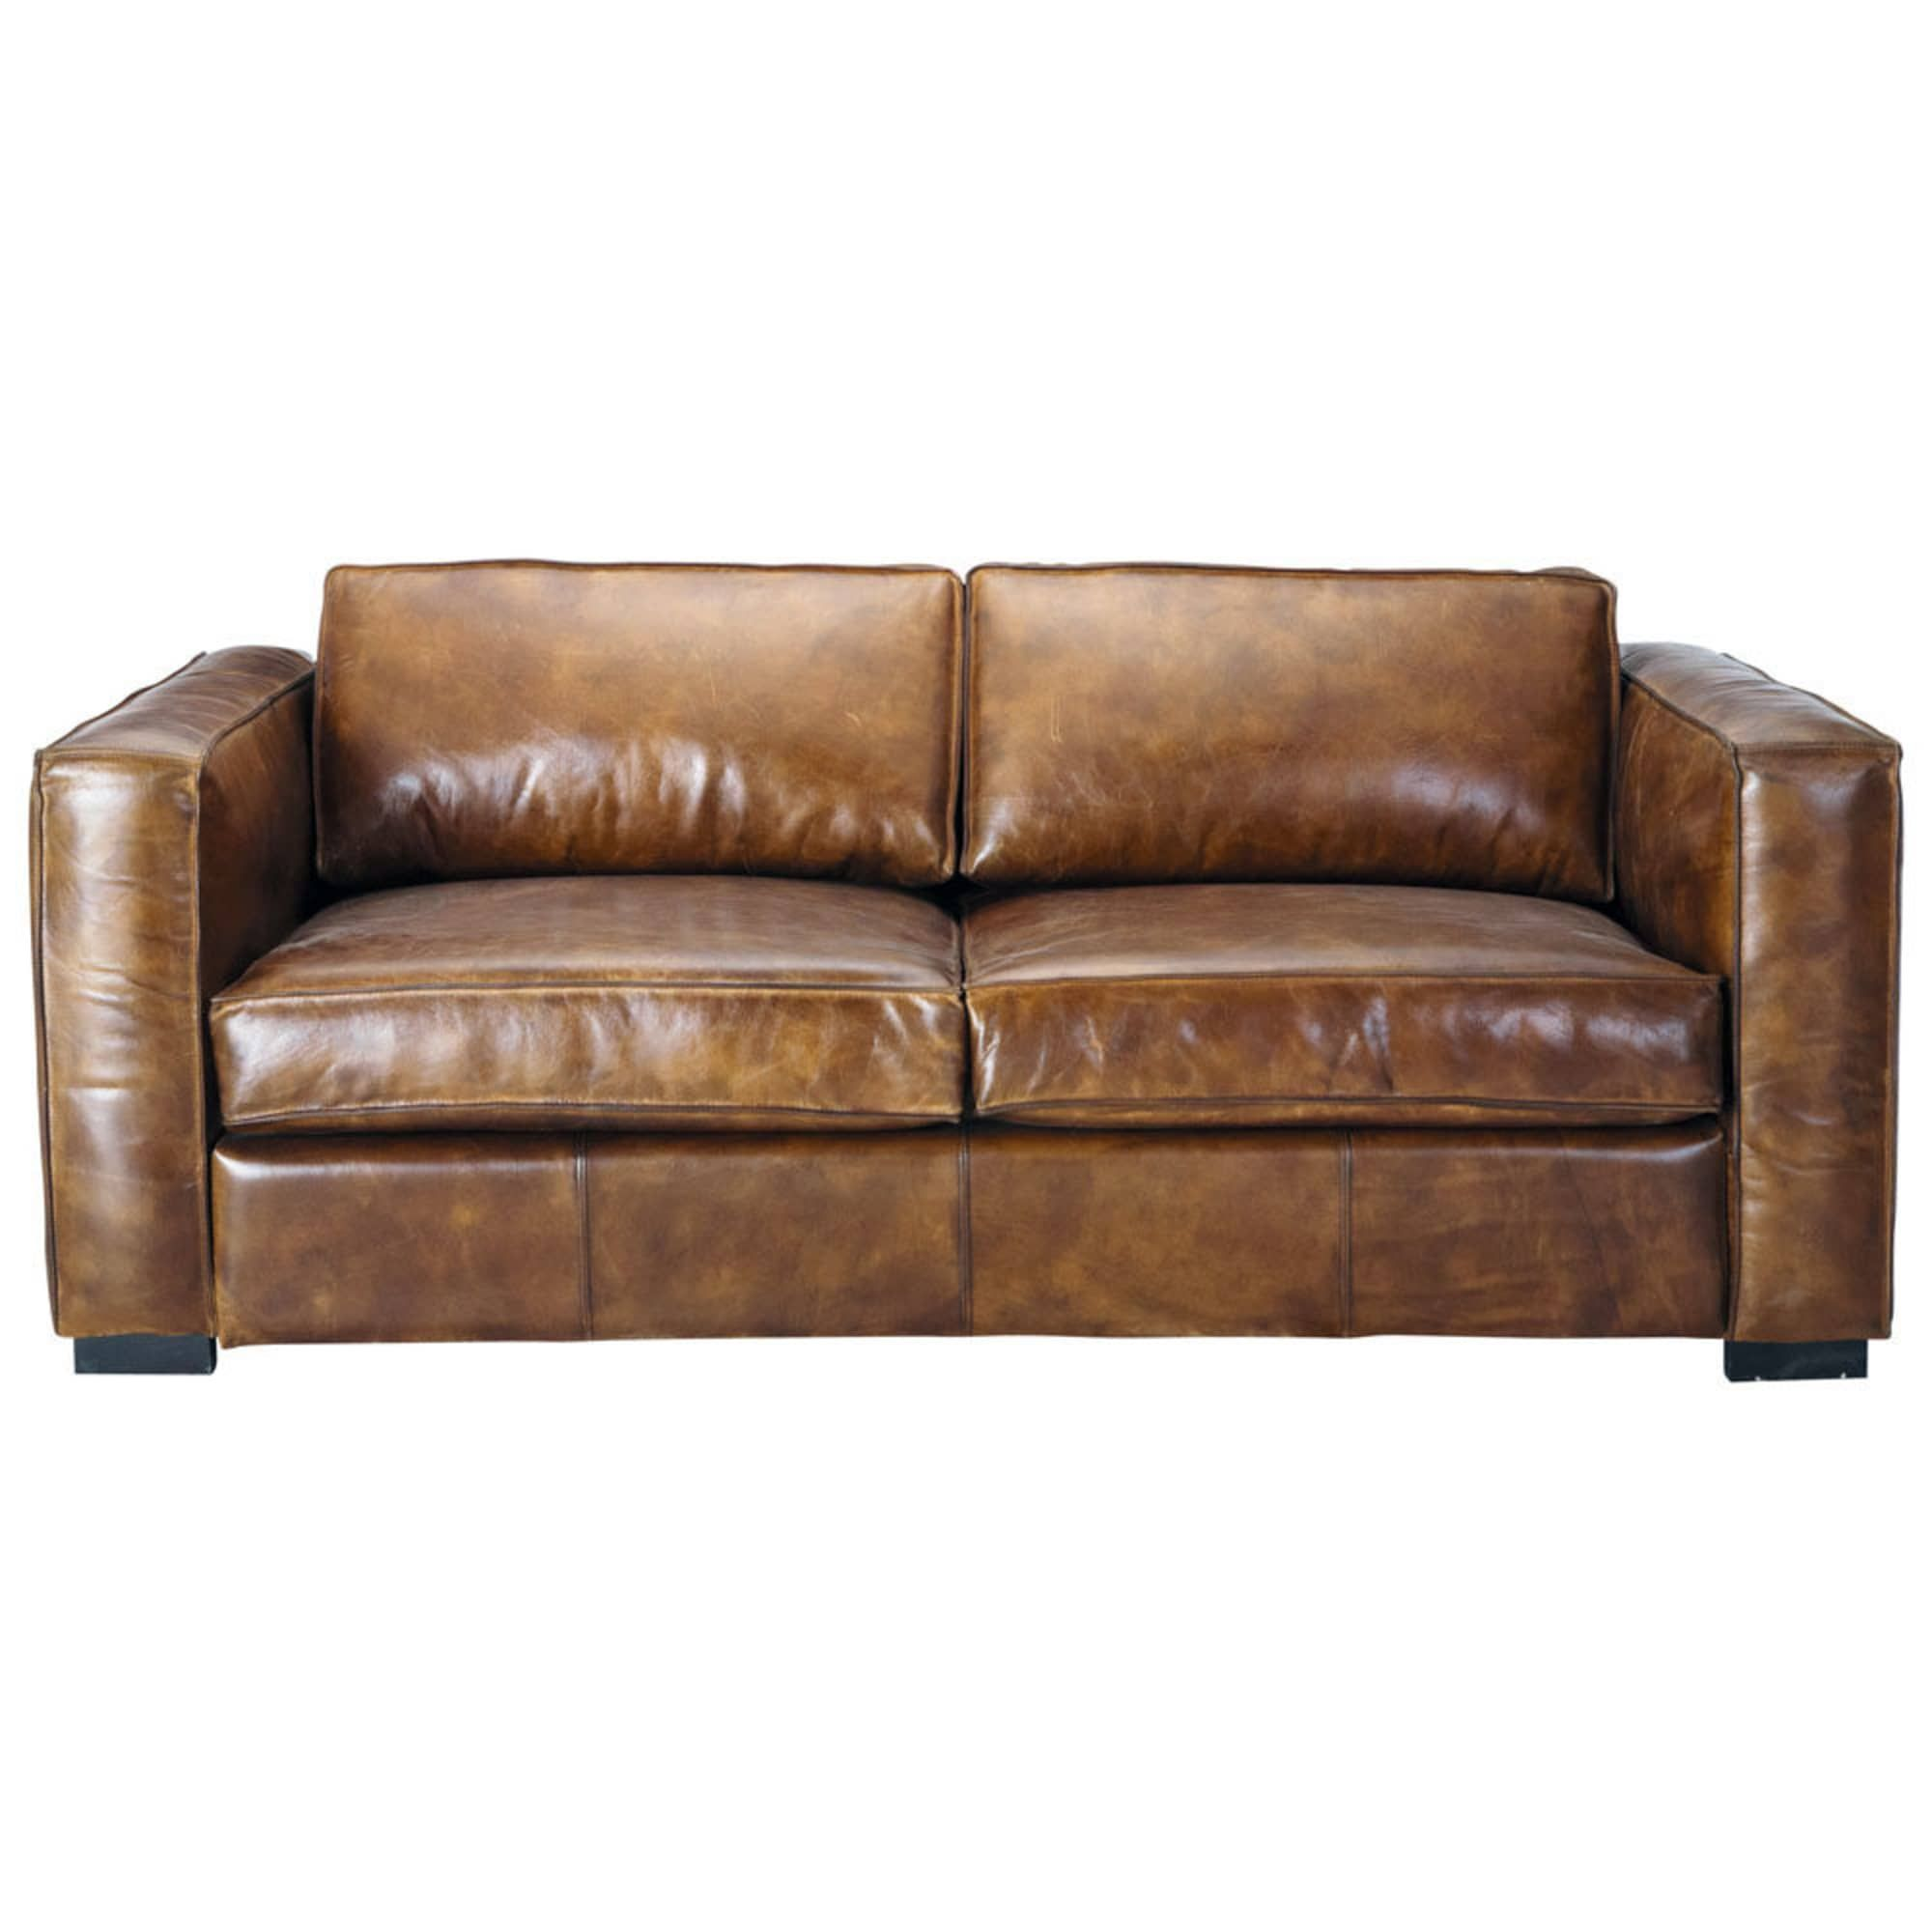 3 Seater Distressed Leather Sofa Bed In Brown Berlin Maisons Du Monde Canape Cuir 3 Places Canape Cuir Marron Canape Cuir